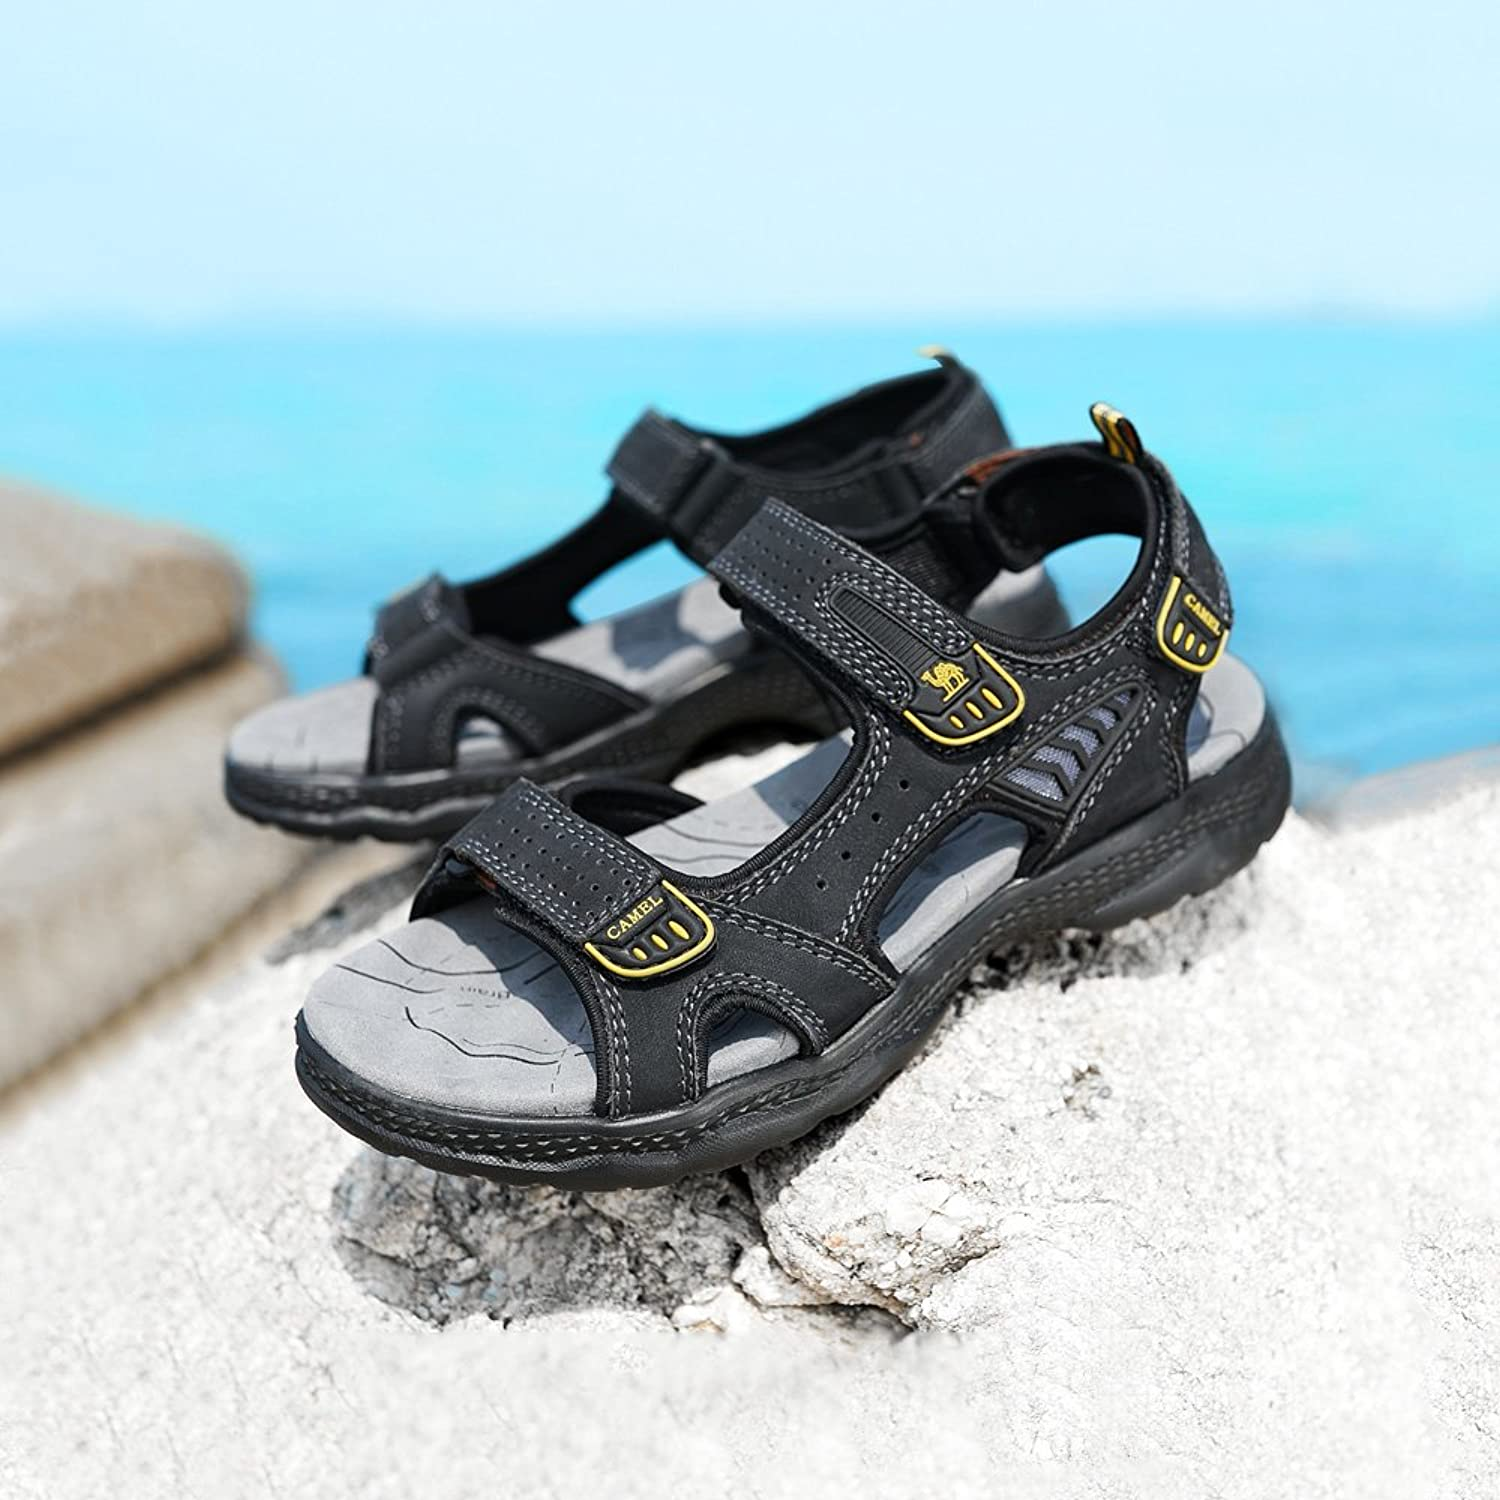 c2885d02231 CAMEL CROWN Mens Leather Sandals Comfortable Walking for Beach Treads Water  Summer Athletic Outdoor Hiking Shoes